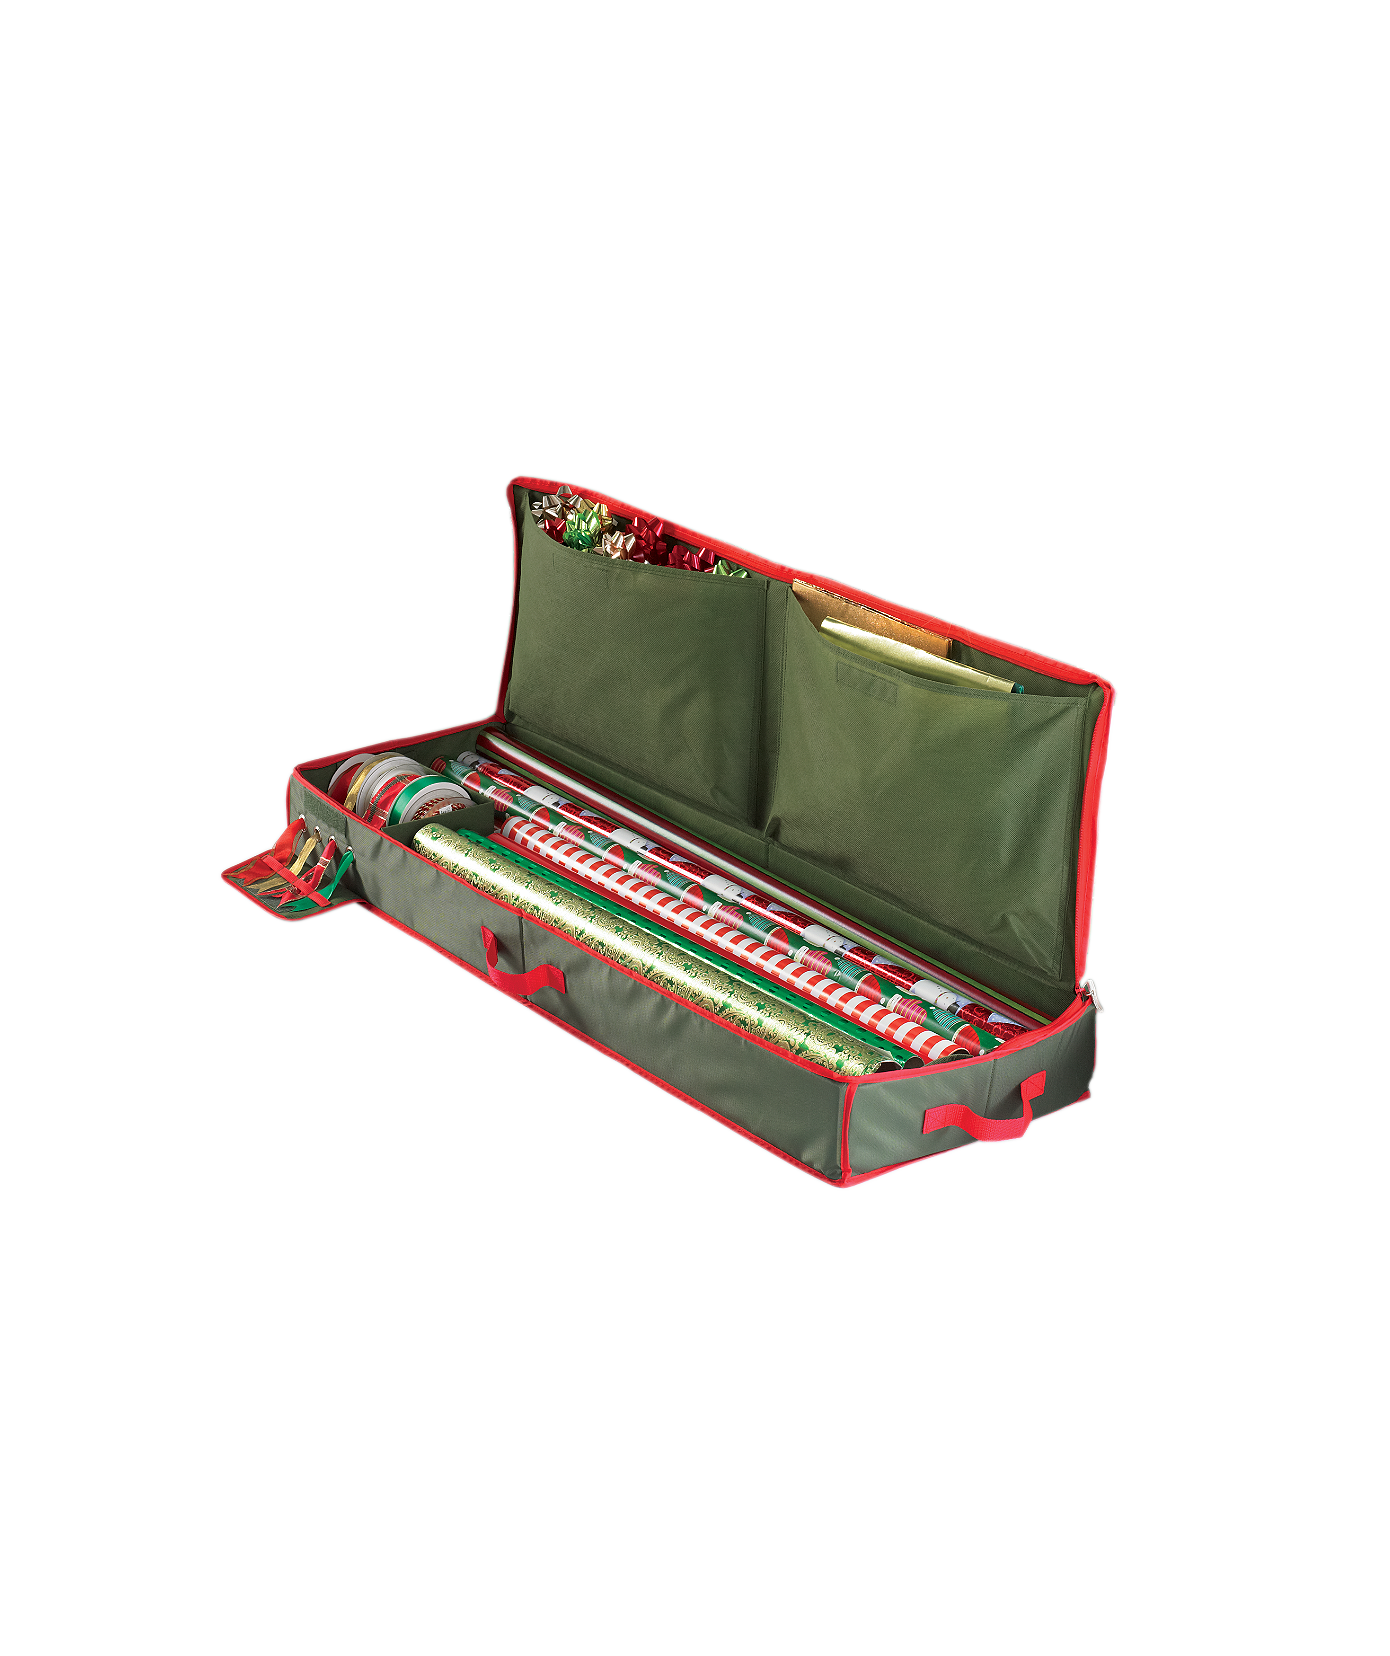 Www Bedbathandbeyond Com Store Locator: Real Simple® Holiday Gift Wrap Under Bed Wrapping Paper